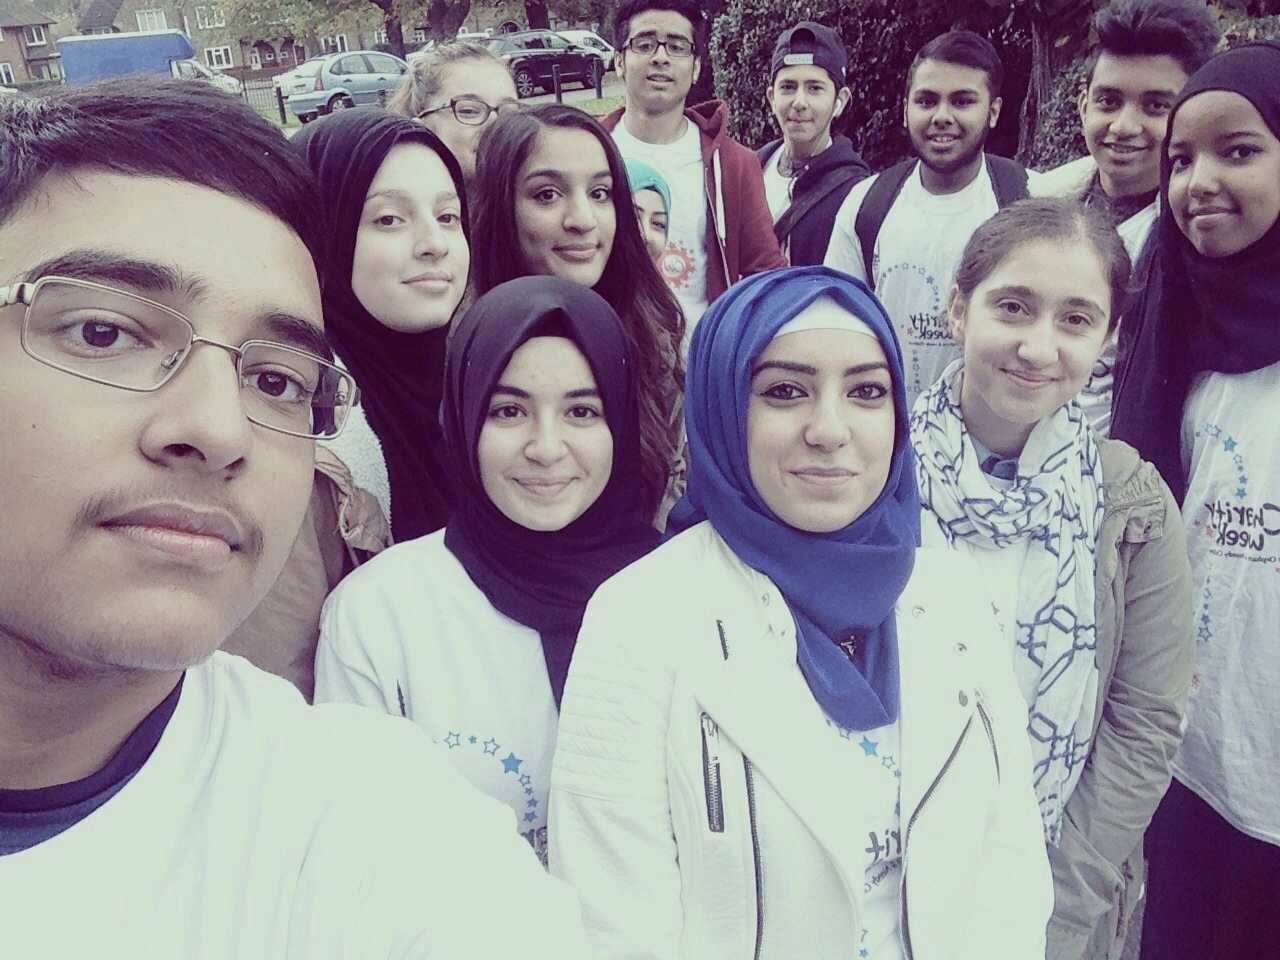 Woodhouse College Islamic Society has raised an astonishing amount of £4860.07